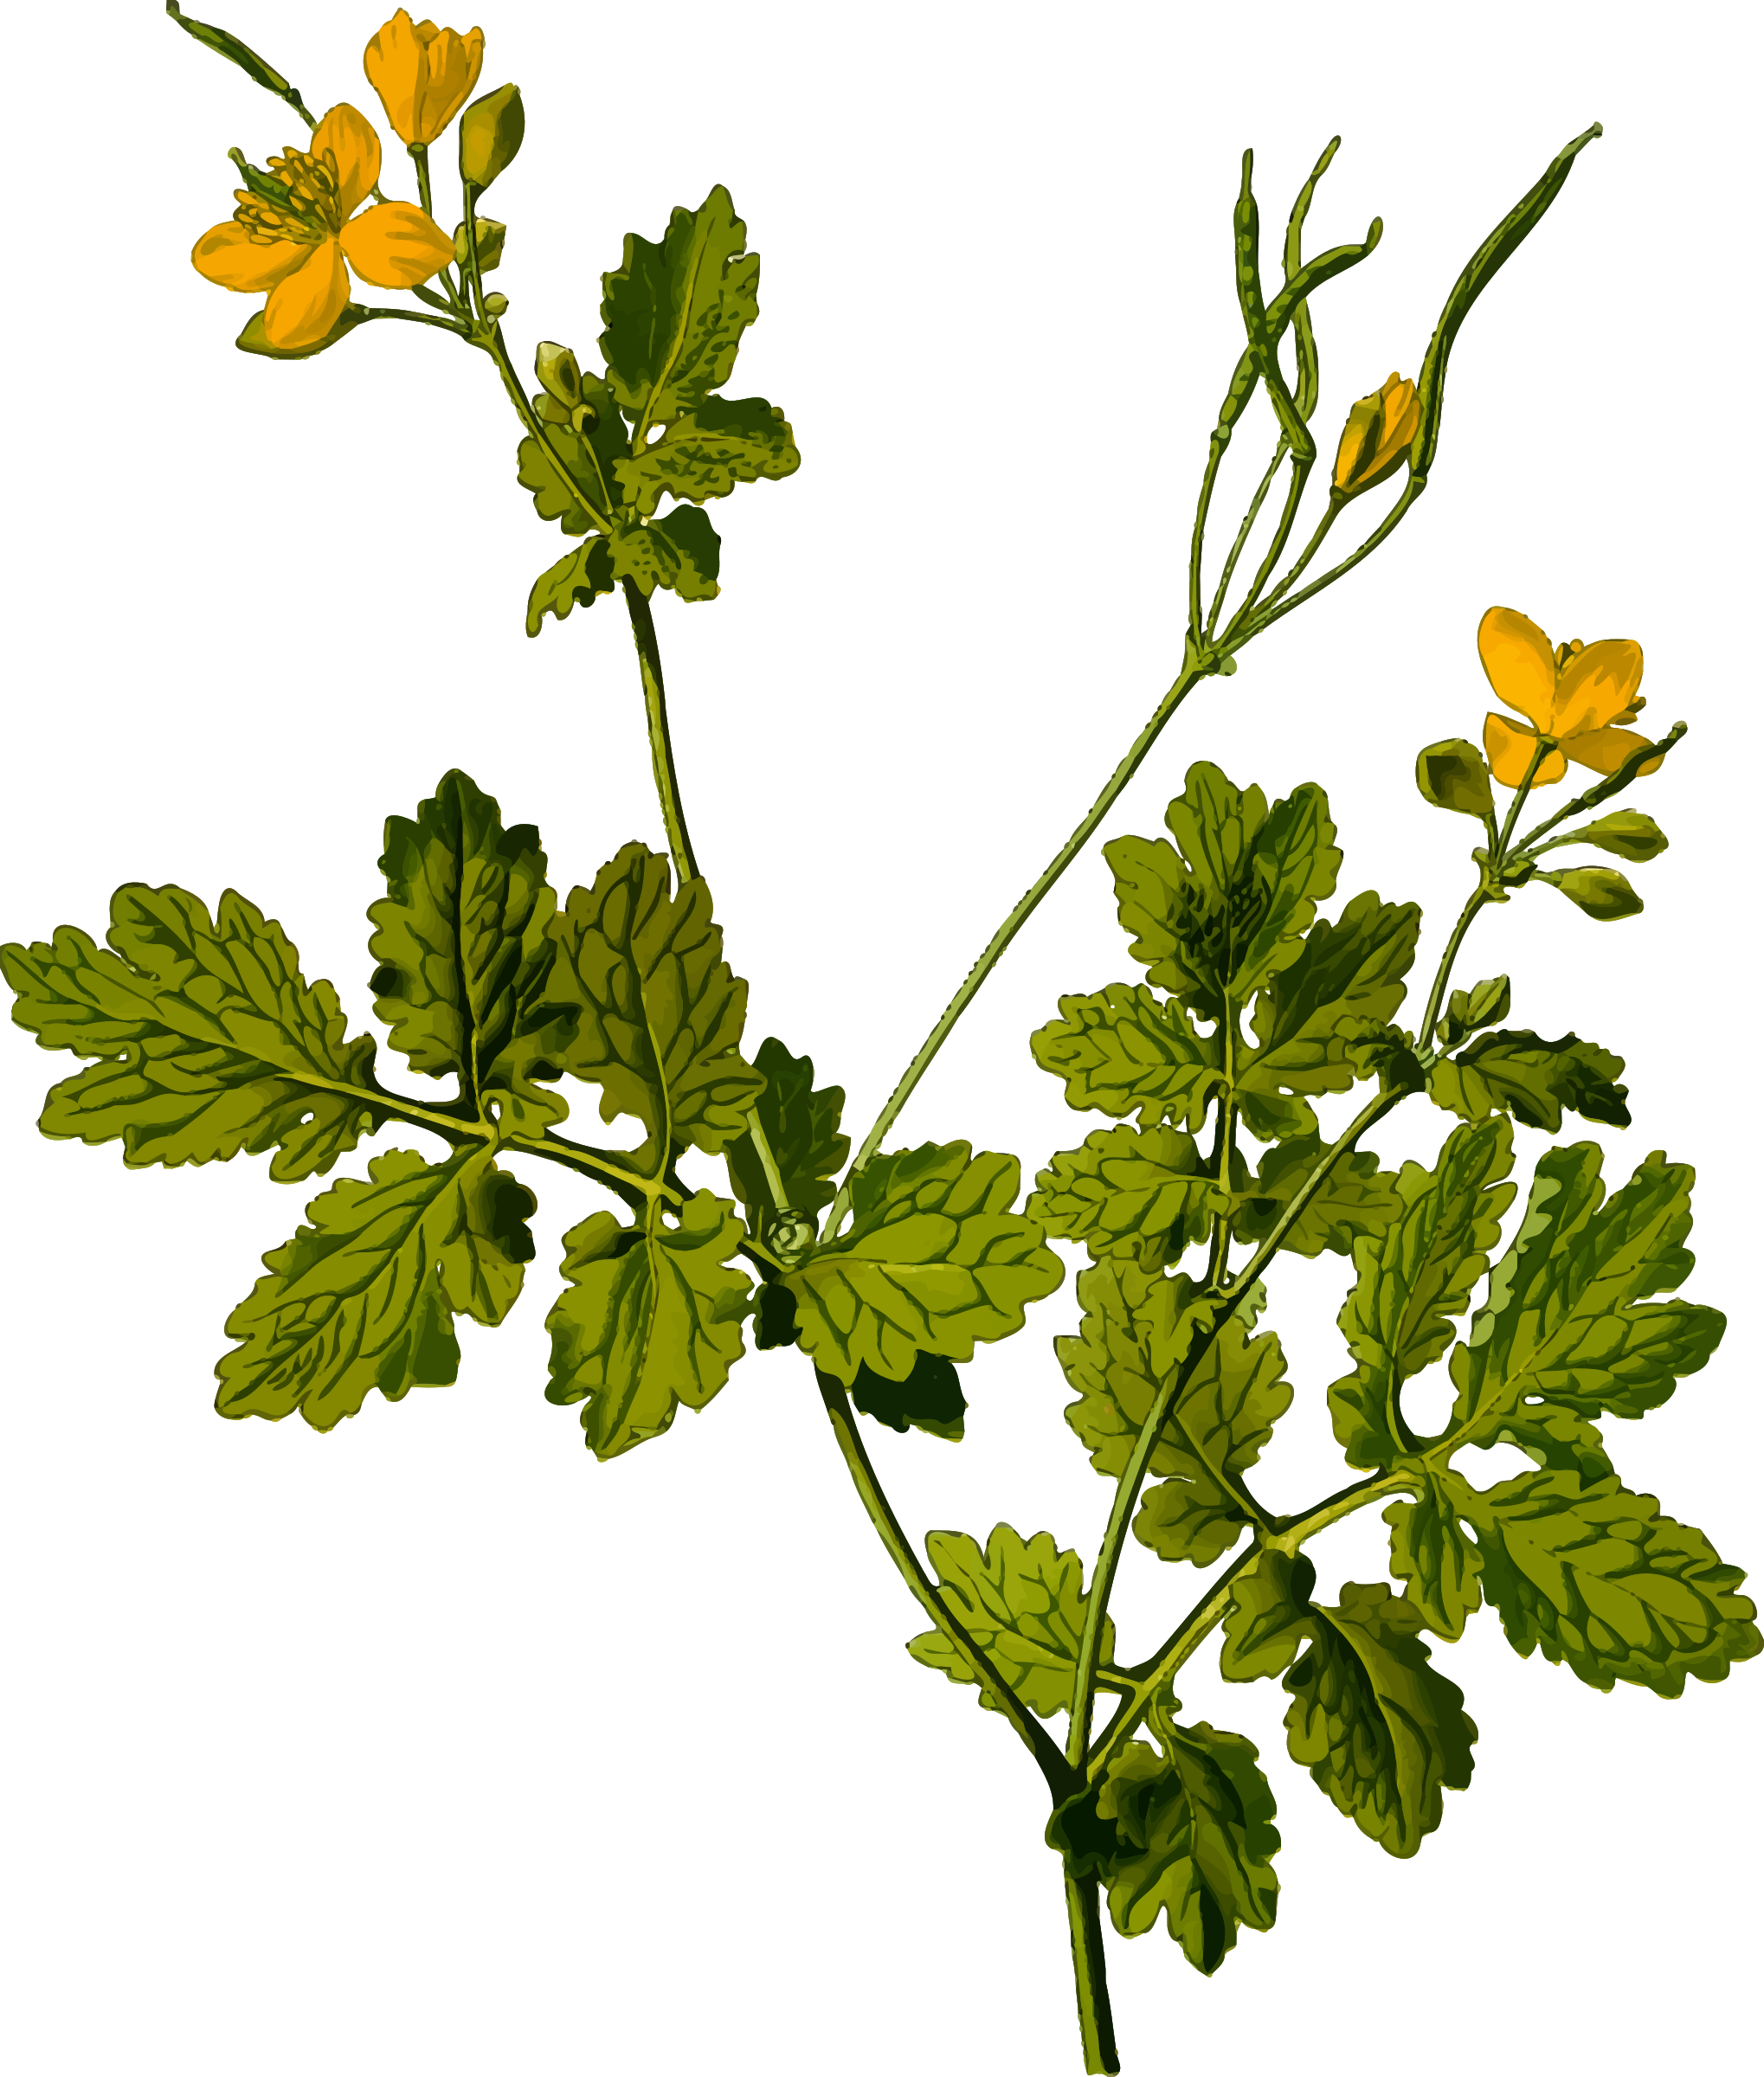 Greater celandine detailed by firkin from a drawing in